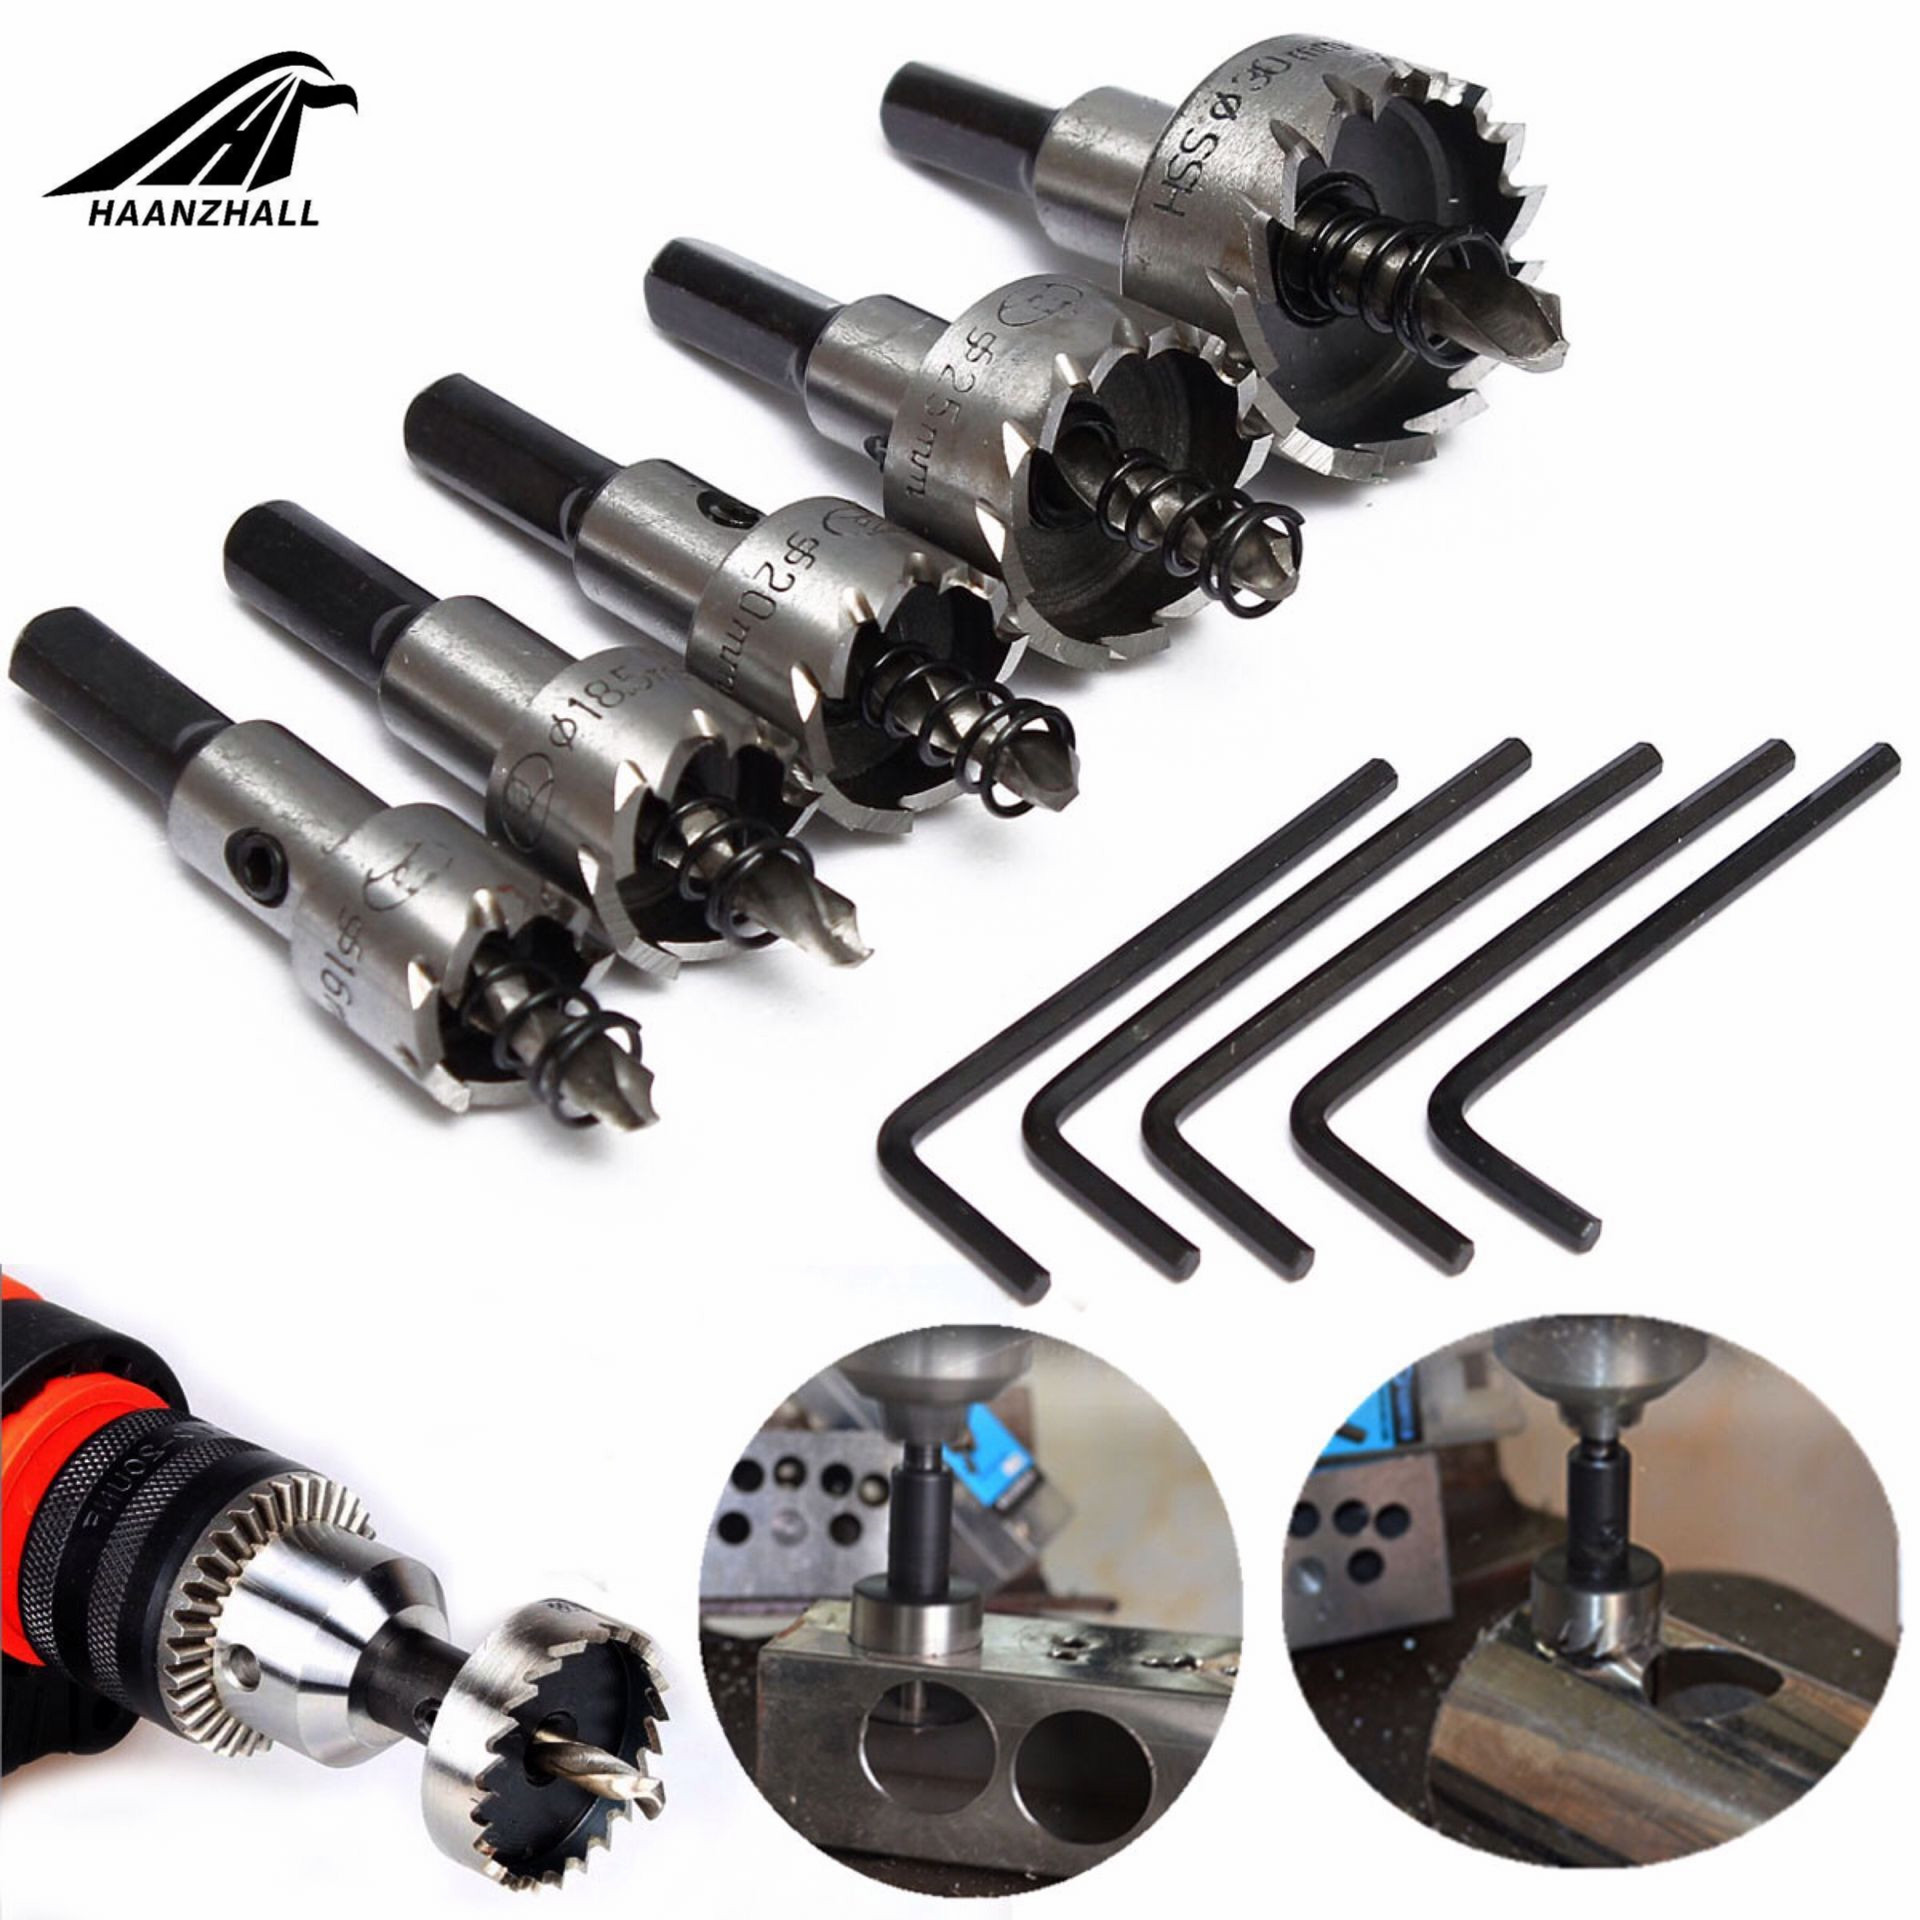 12mm-60mm Carbide Tip Hole Saw Drill Bit for Alloy Metal Stainless Steel